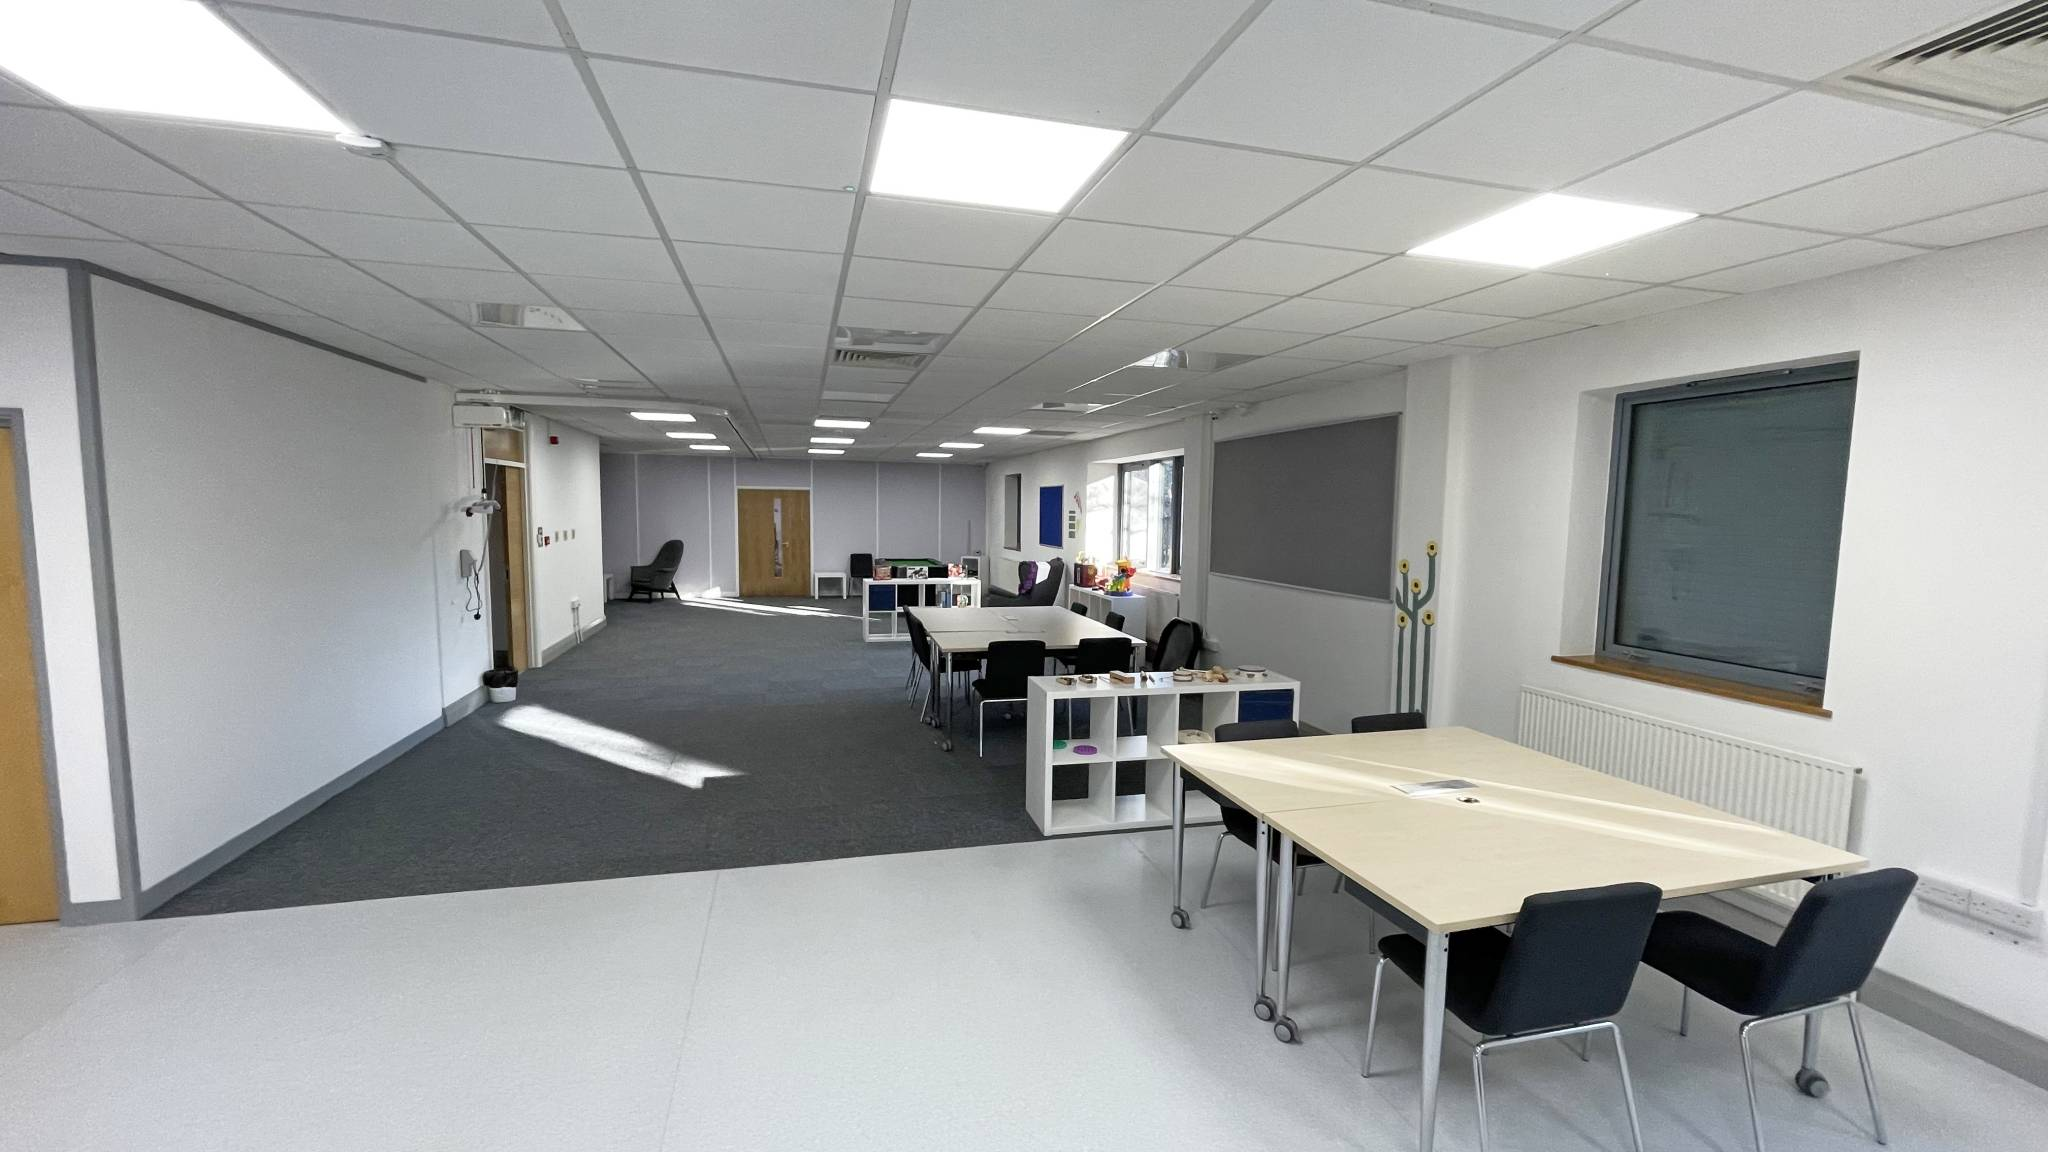 Partitioning install and fit out